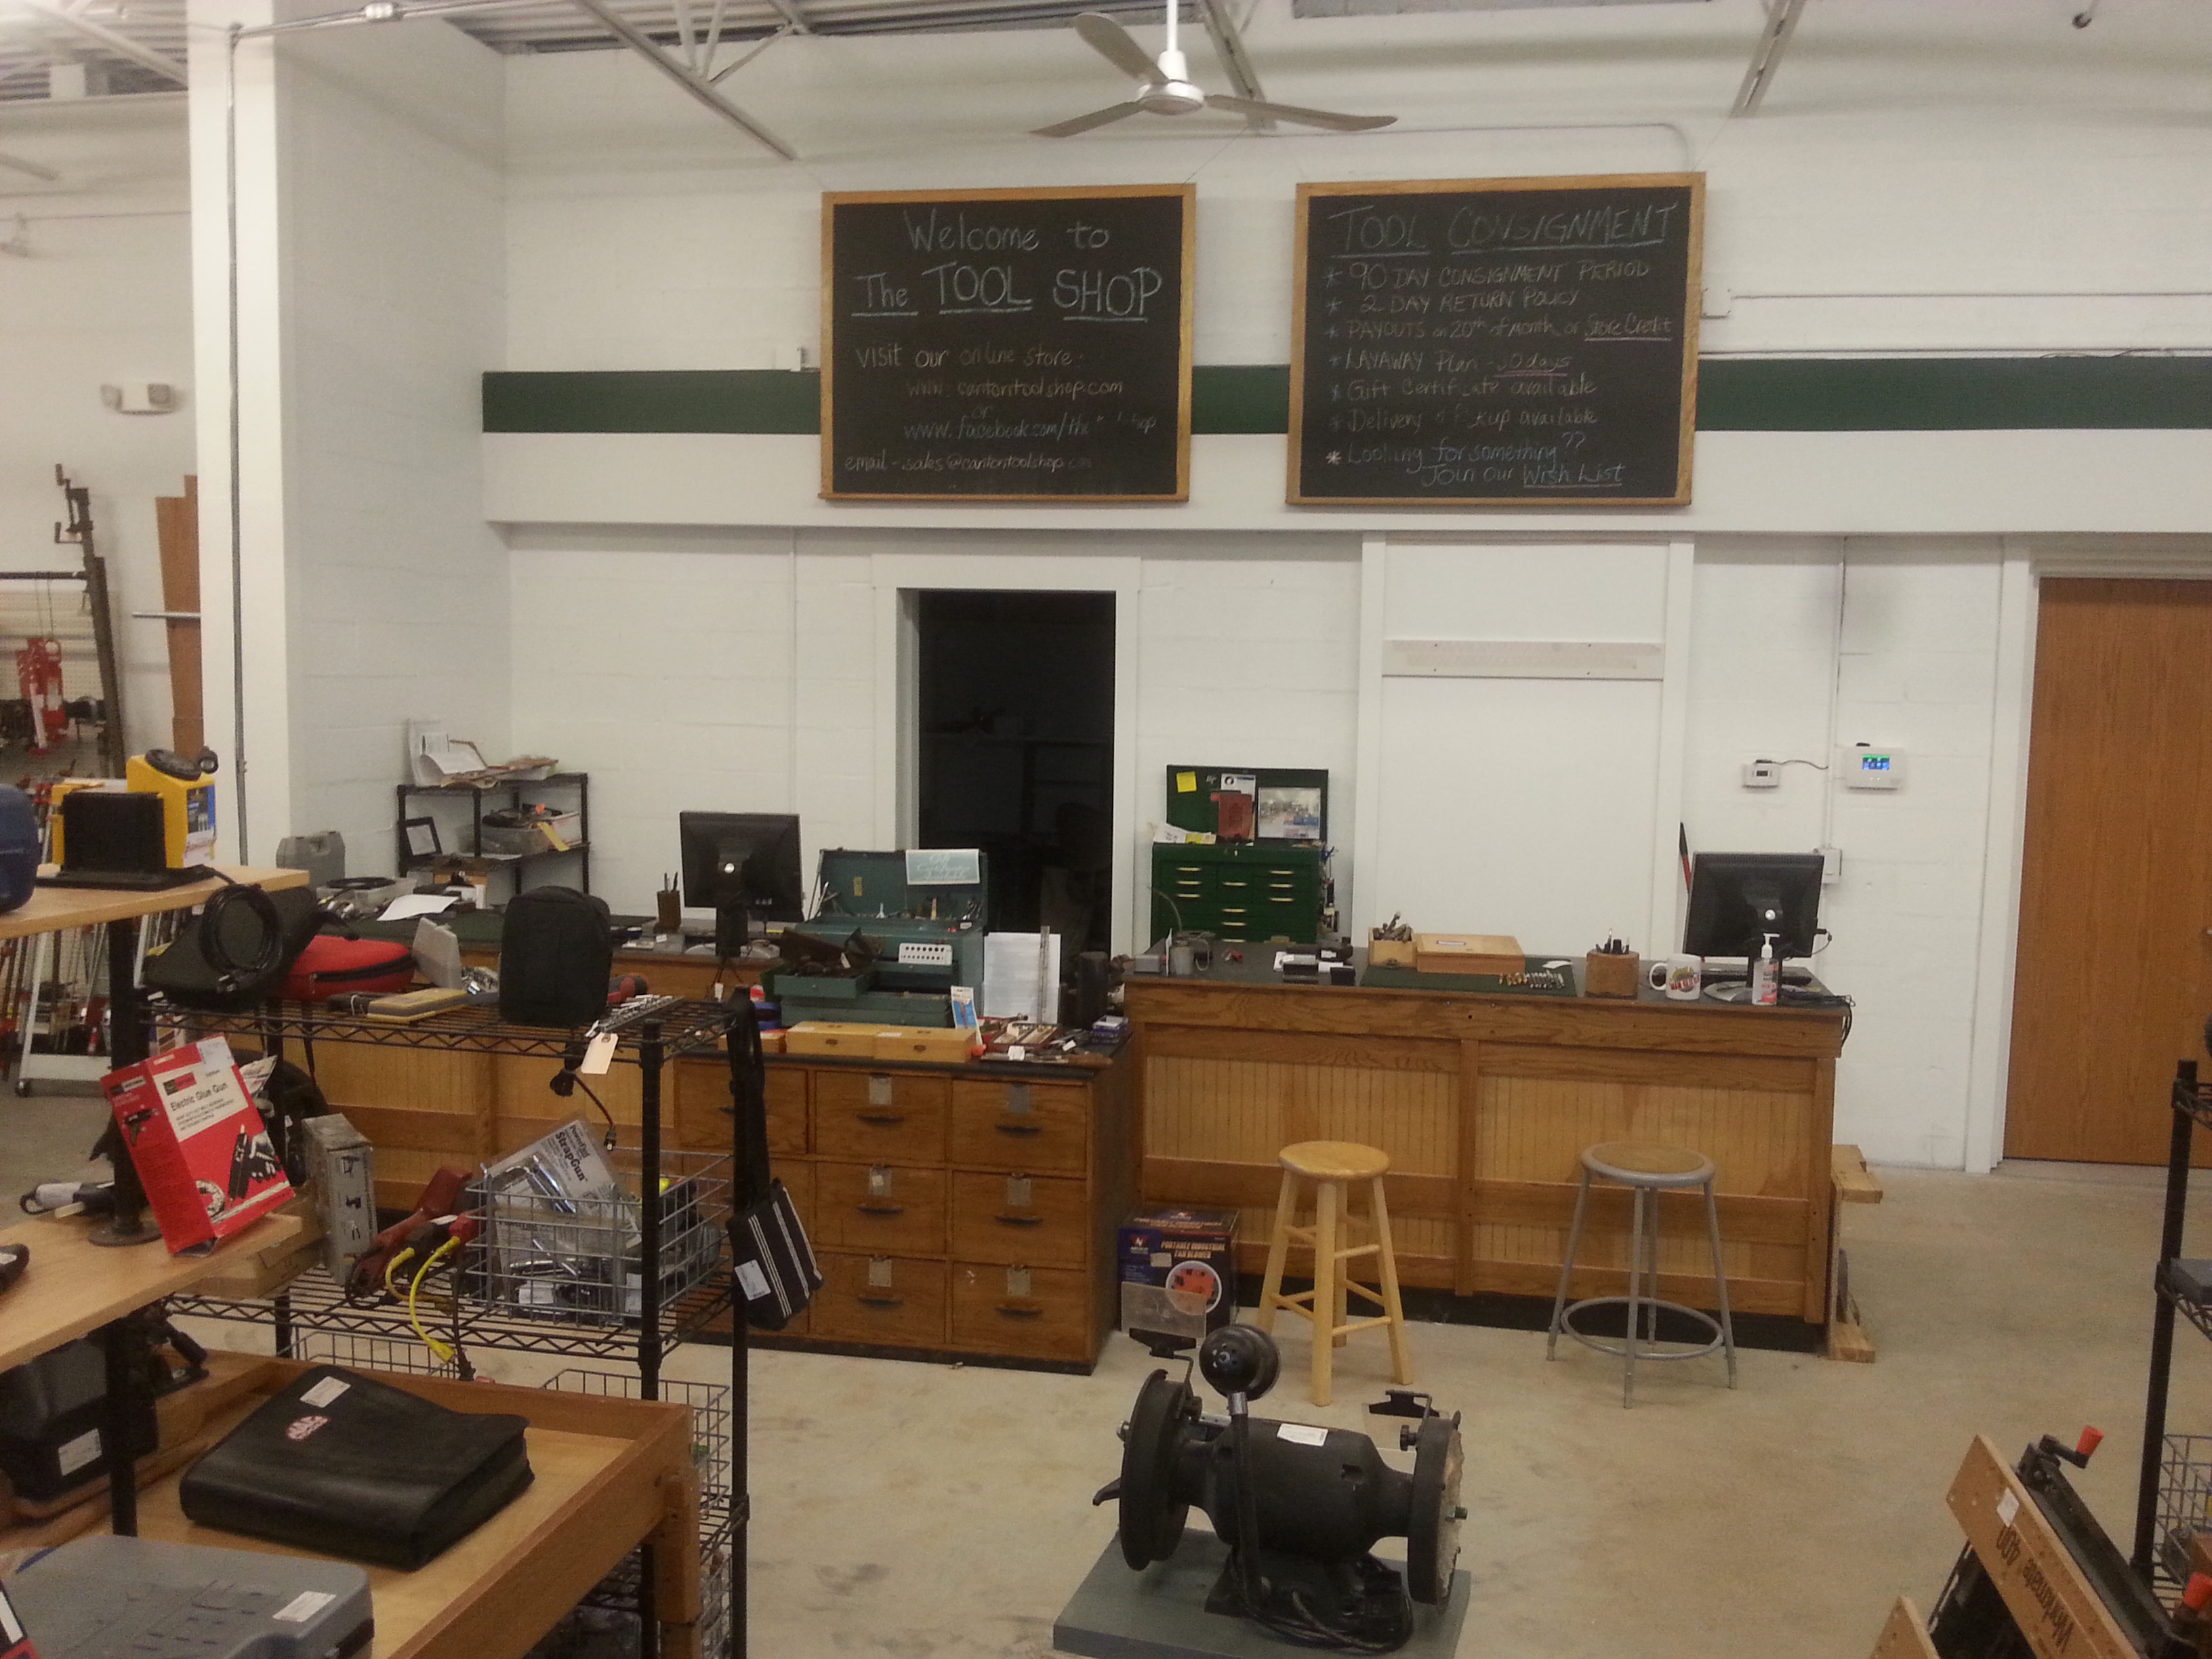 The Tool Store >> The Work Shop The Tool Shop Welcome To The Work Shop